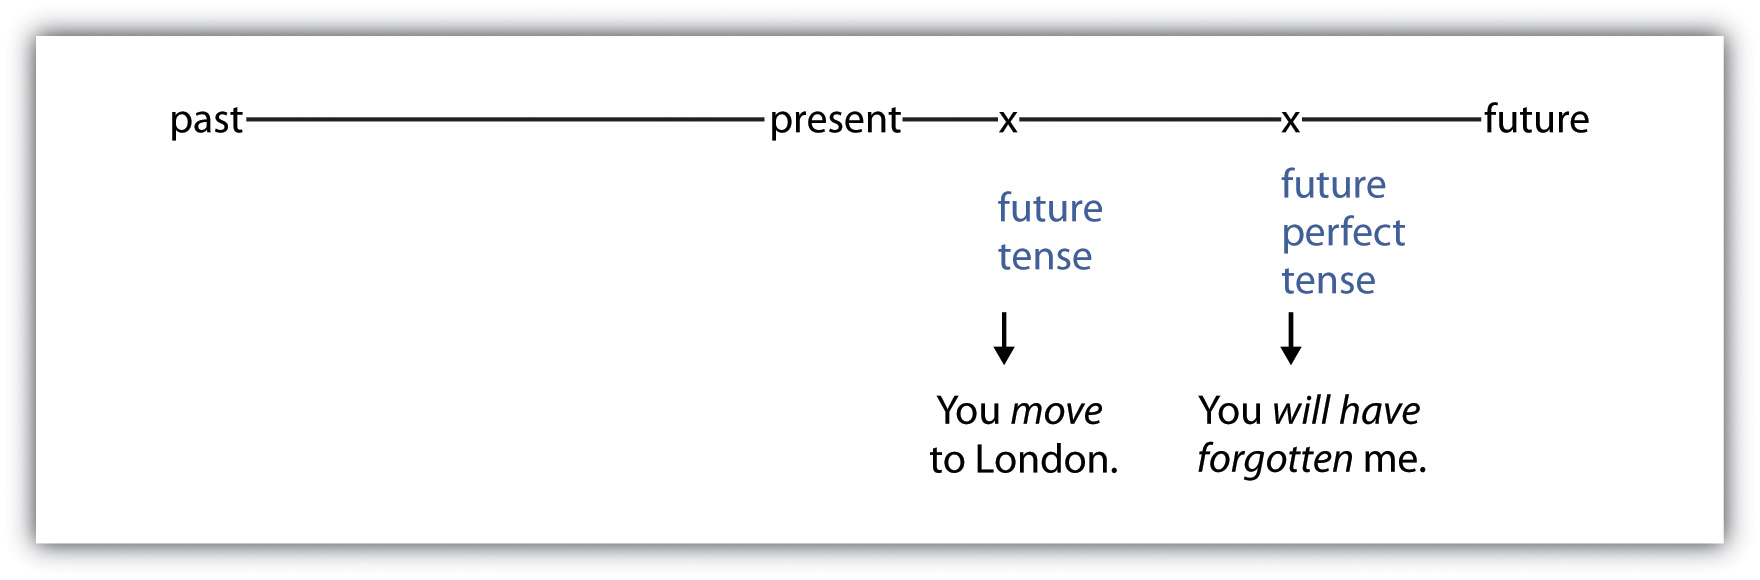 You move to London (future tense). You will have forgotten me (future perfect tense).